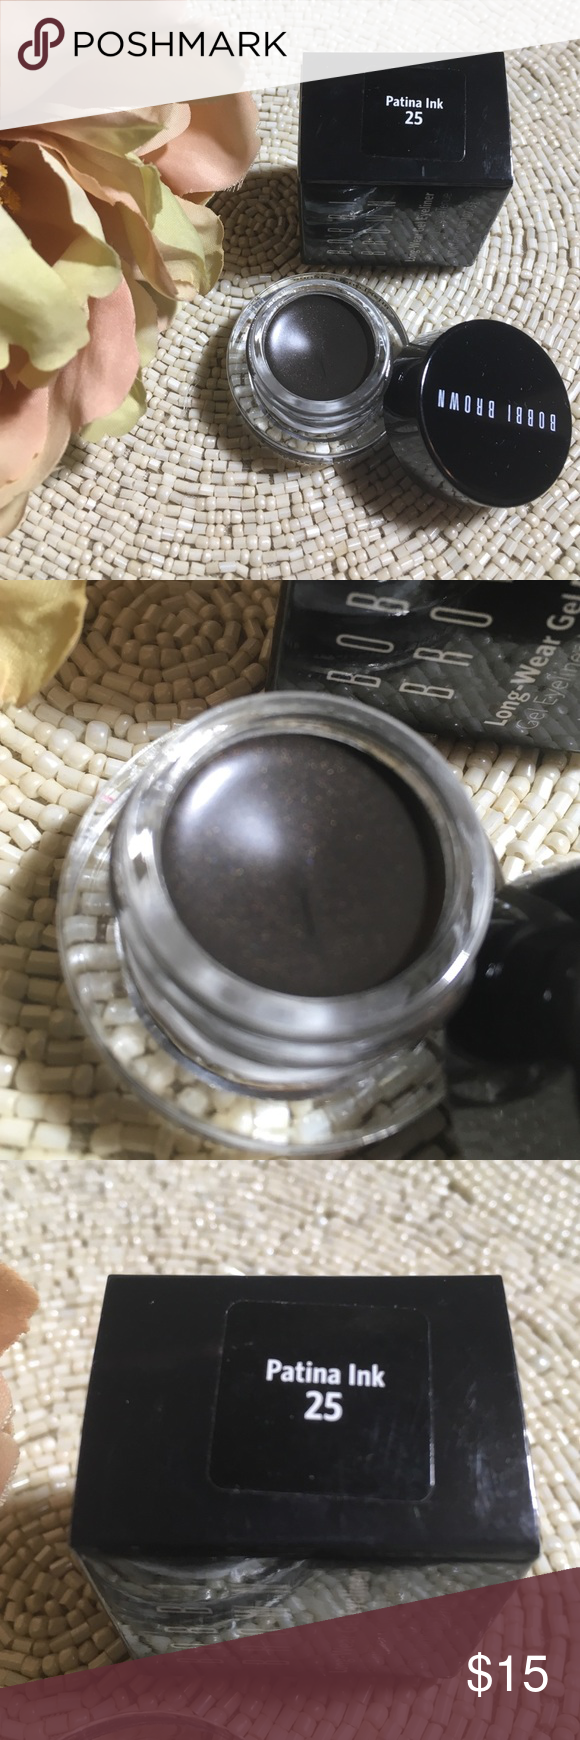 """Bobbi brown gel eyeliner Brand new and authentic• in the color """"patina ink"""" • this is brown with slight gold shimmer Sephora Makeup Eyeliner"""